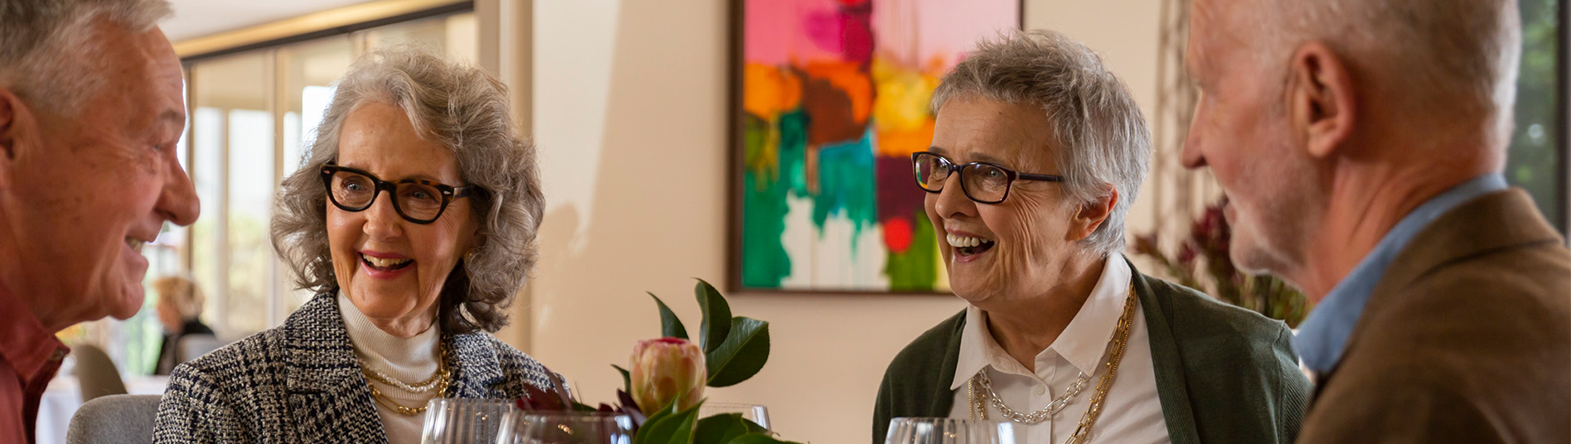 Prospect Hill Camberwell, retirement living - group dining, head shots